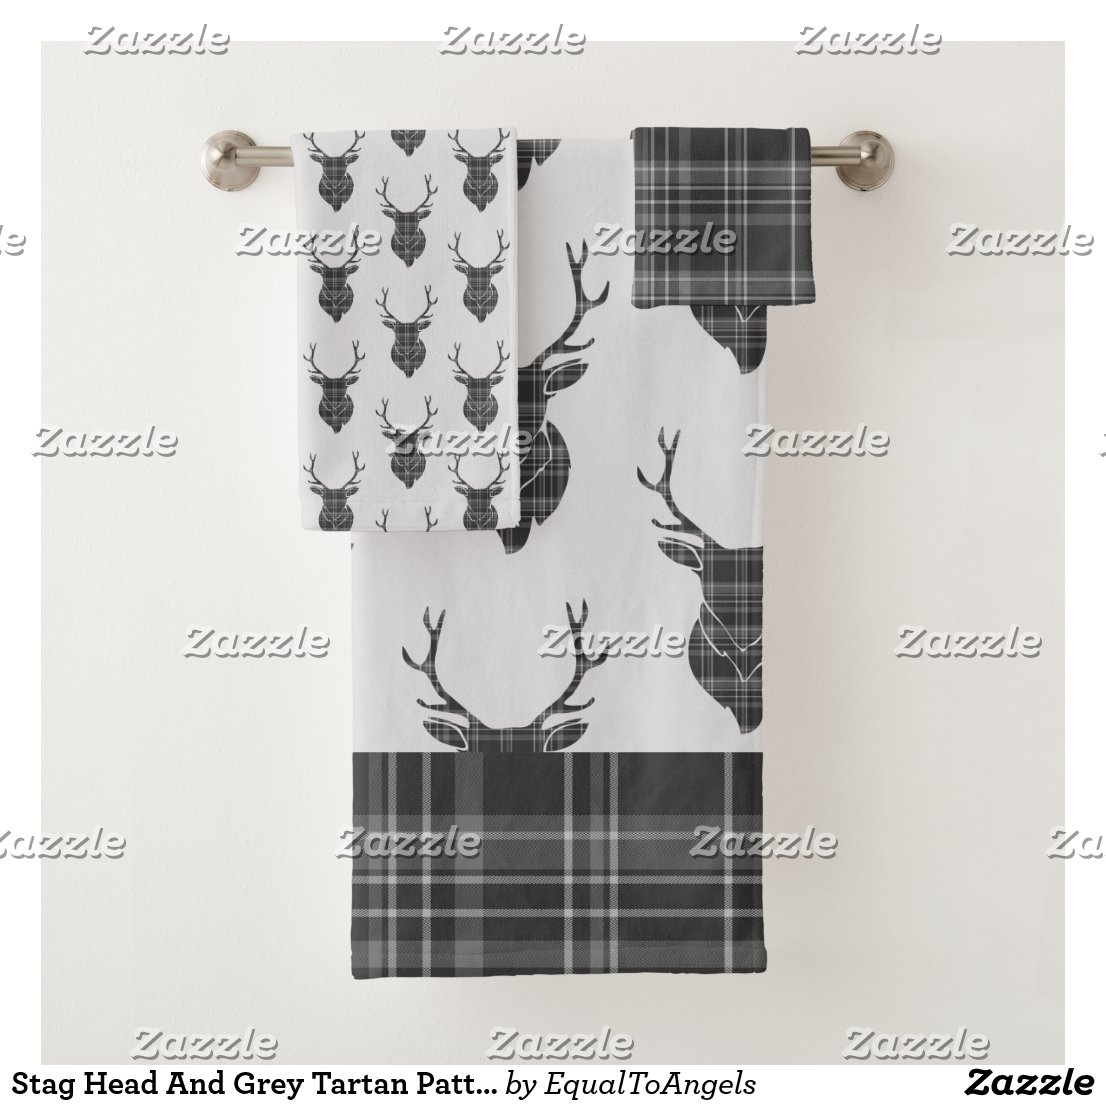 Stag Head And Grey Tartan Pattern Rustic Bath Towel Set